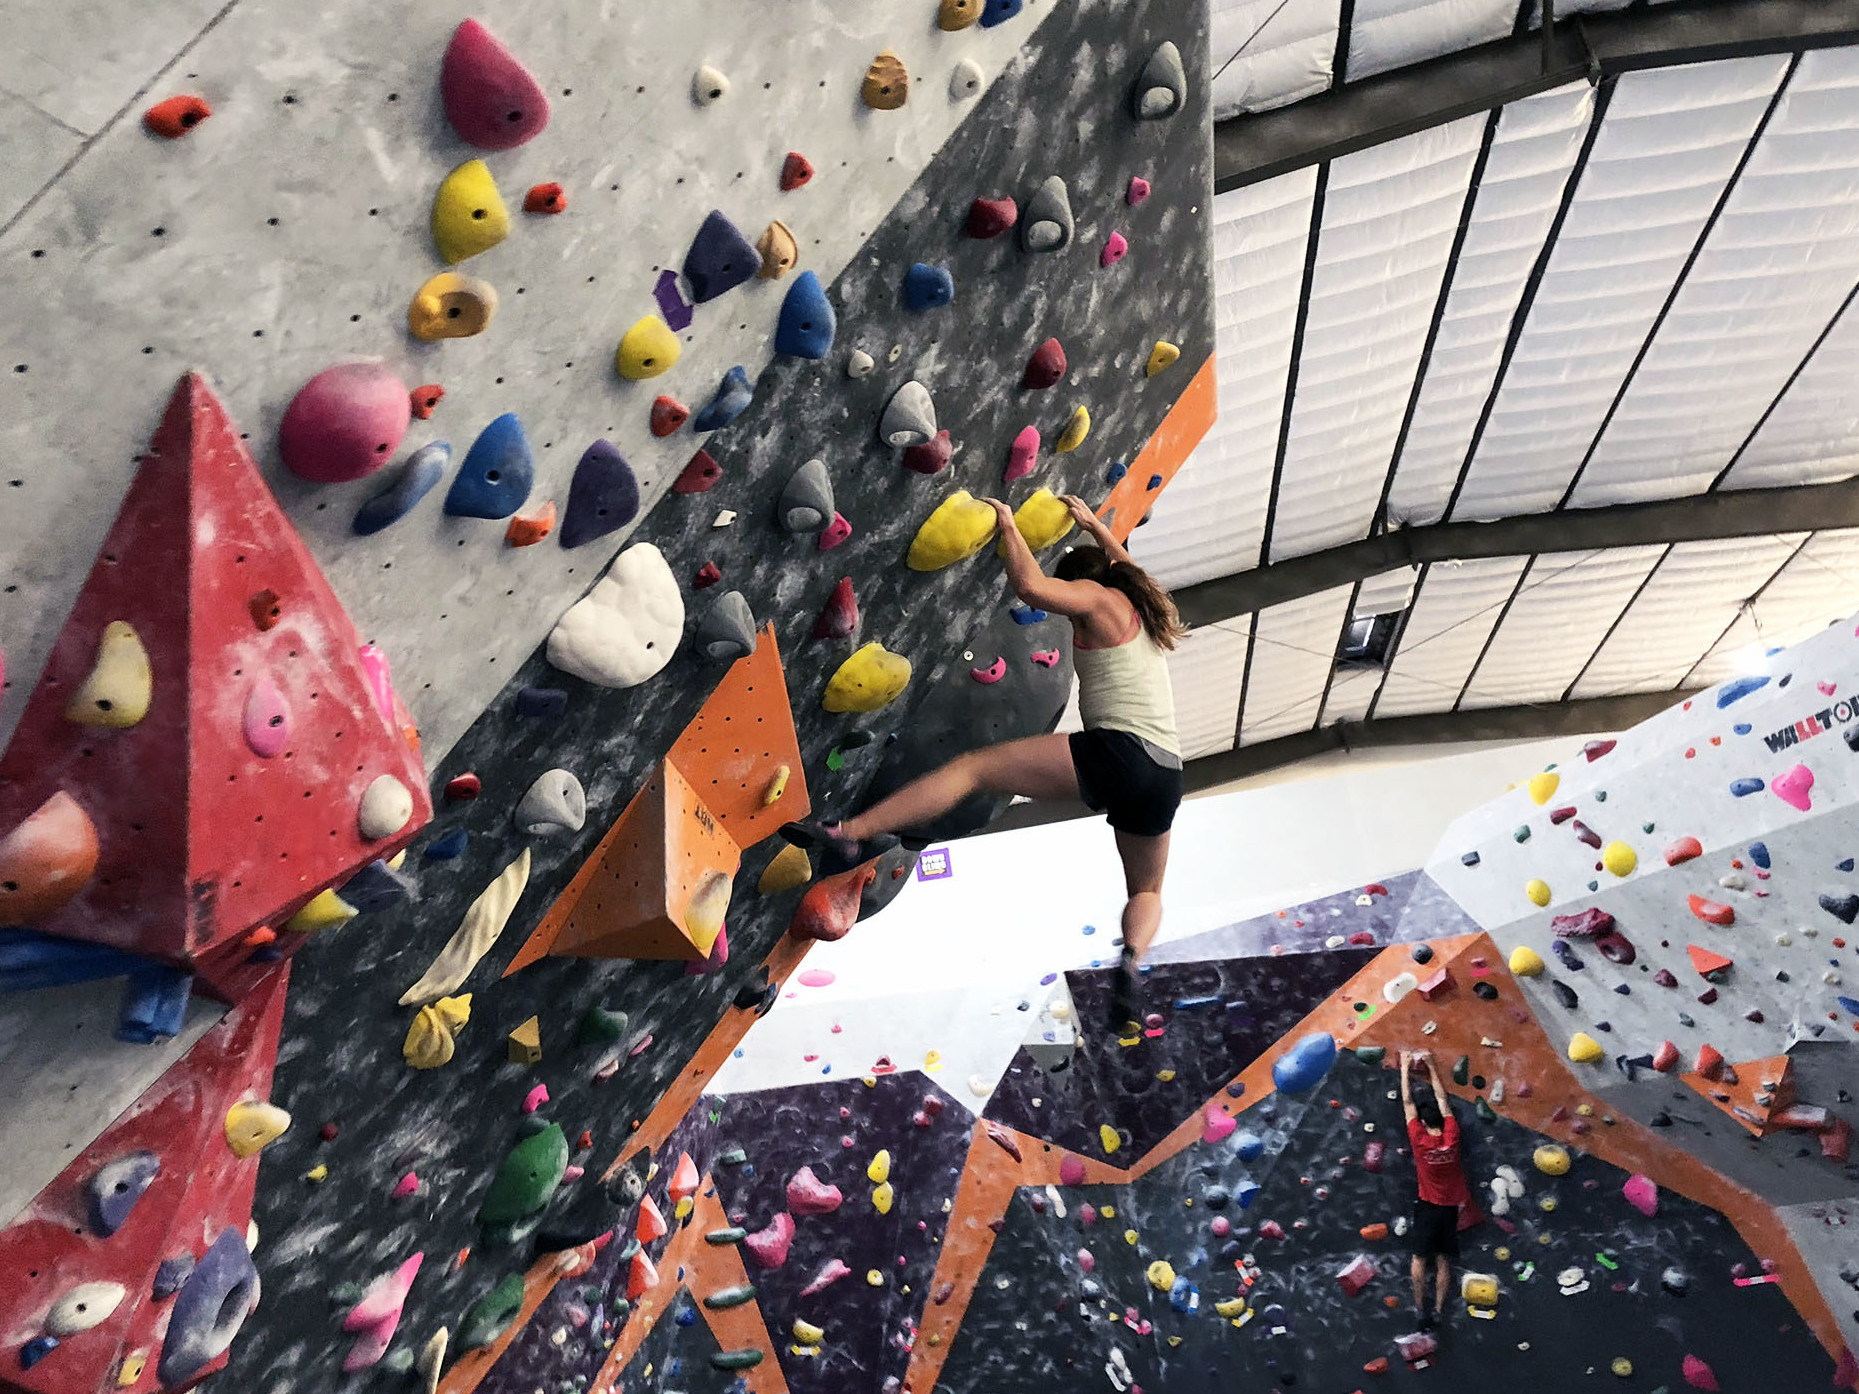 Rock climbing gyms have changed rock climbing in Yosemite, from who climbs to how they climb. Hannah Hall climbs at Pipeworks in Sacramento. She said that climbing at the gym has made her a lot stronger while climbing outdoors.